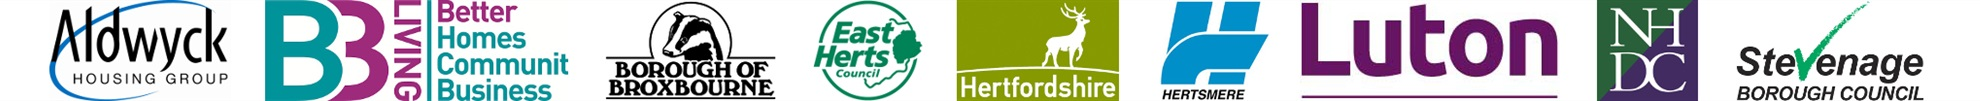 SAFS partners: Aldwyck Housing Group, B3 Living, Broxbourne Borough Council, East Herts Council, Hertfordshire County Council, Hertsmere Borough Council, Luton Borough Council, North Herts District Council and Stevenage Borough Council.